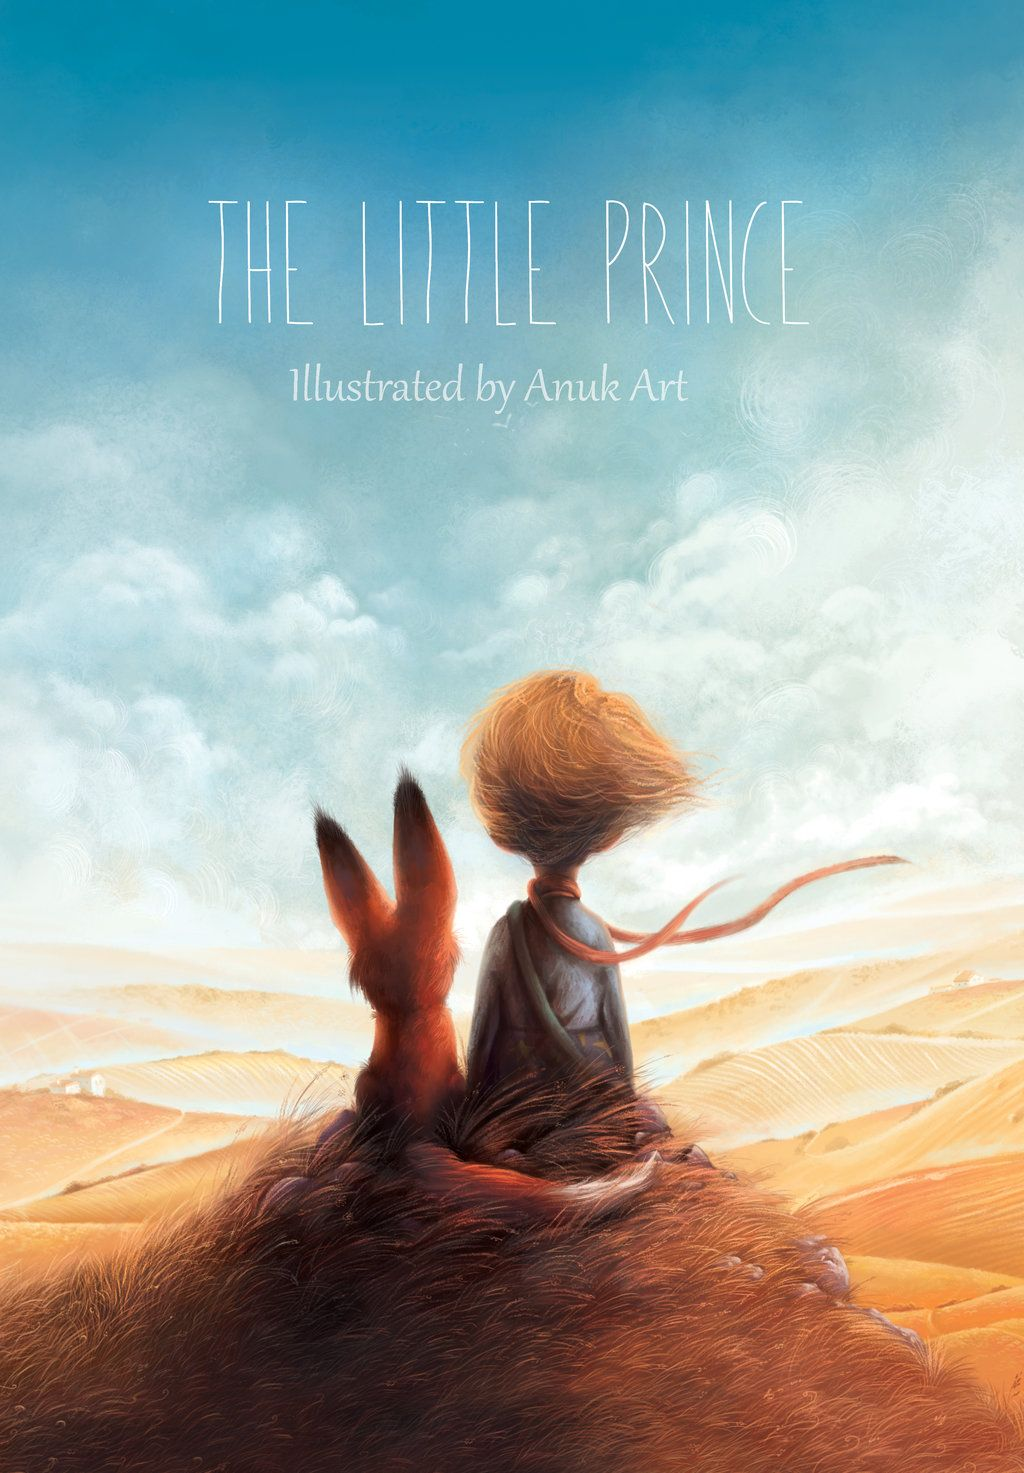 the little prince book cover by anuk com on the little prince book cover by anuk com on